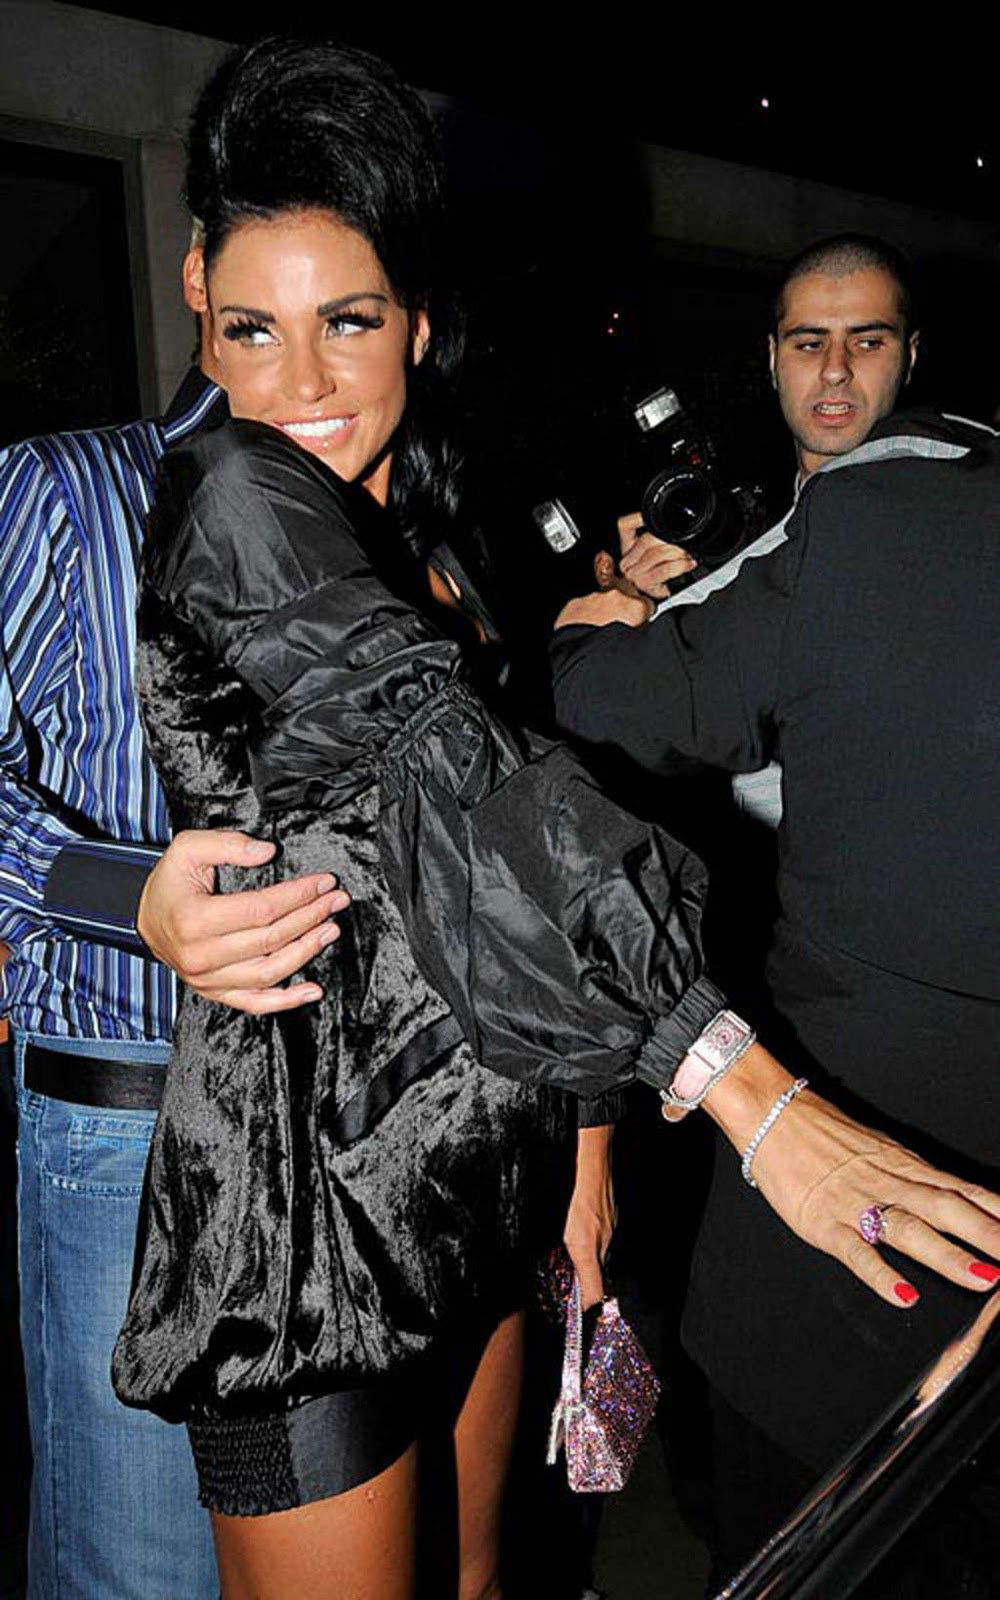 katie price 09 FREE NUDE CELEBS PICTURE: Abi Titmuss pussy covered transparent black panty ...